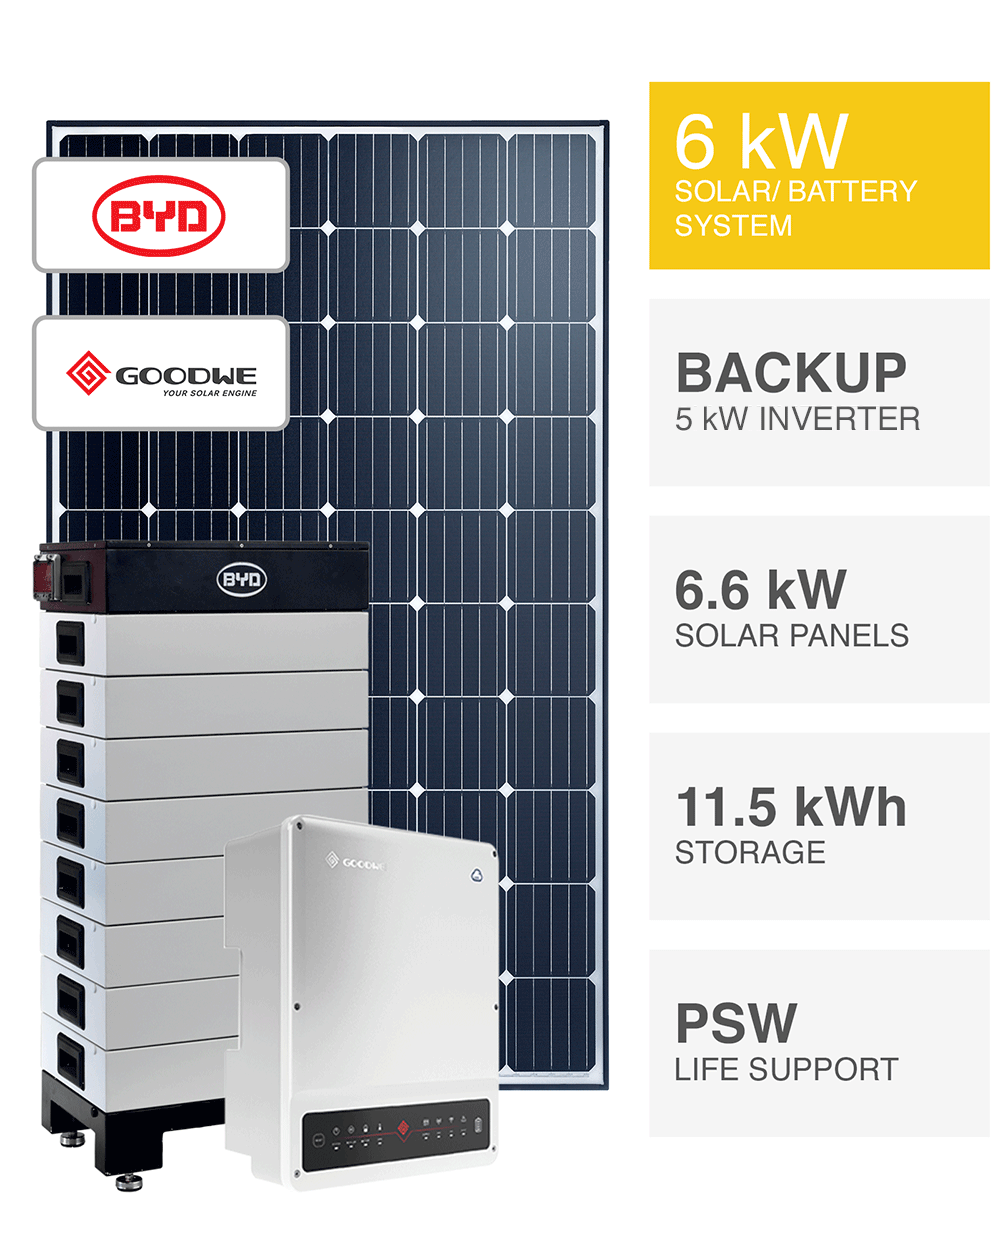 6kw Solar System With Battery Backup Save More Installed Prices